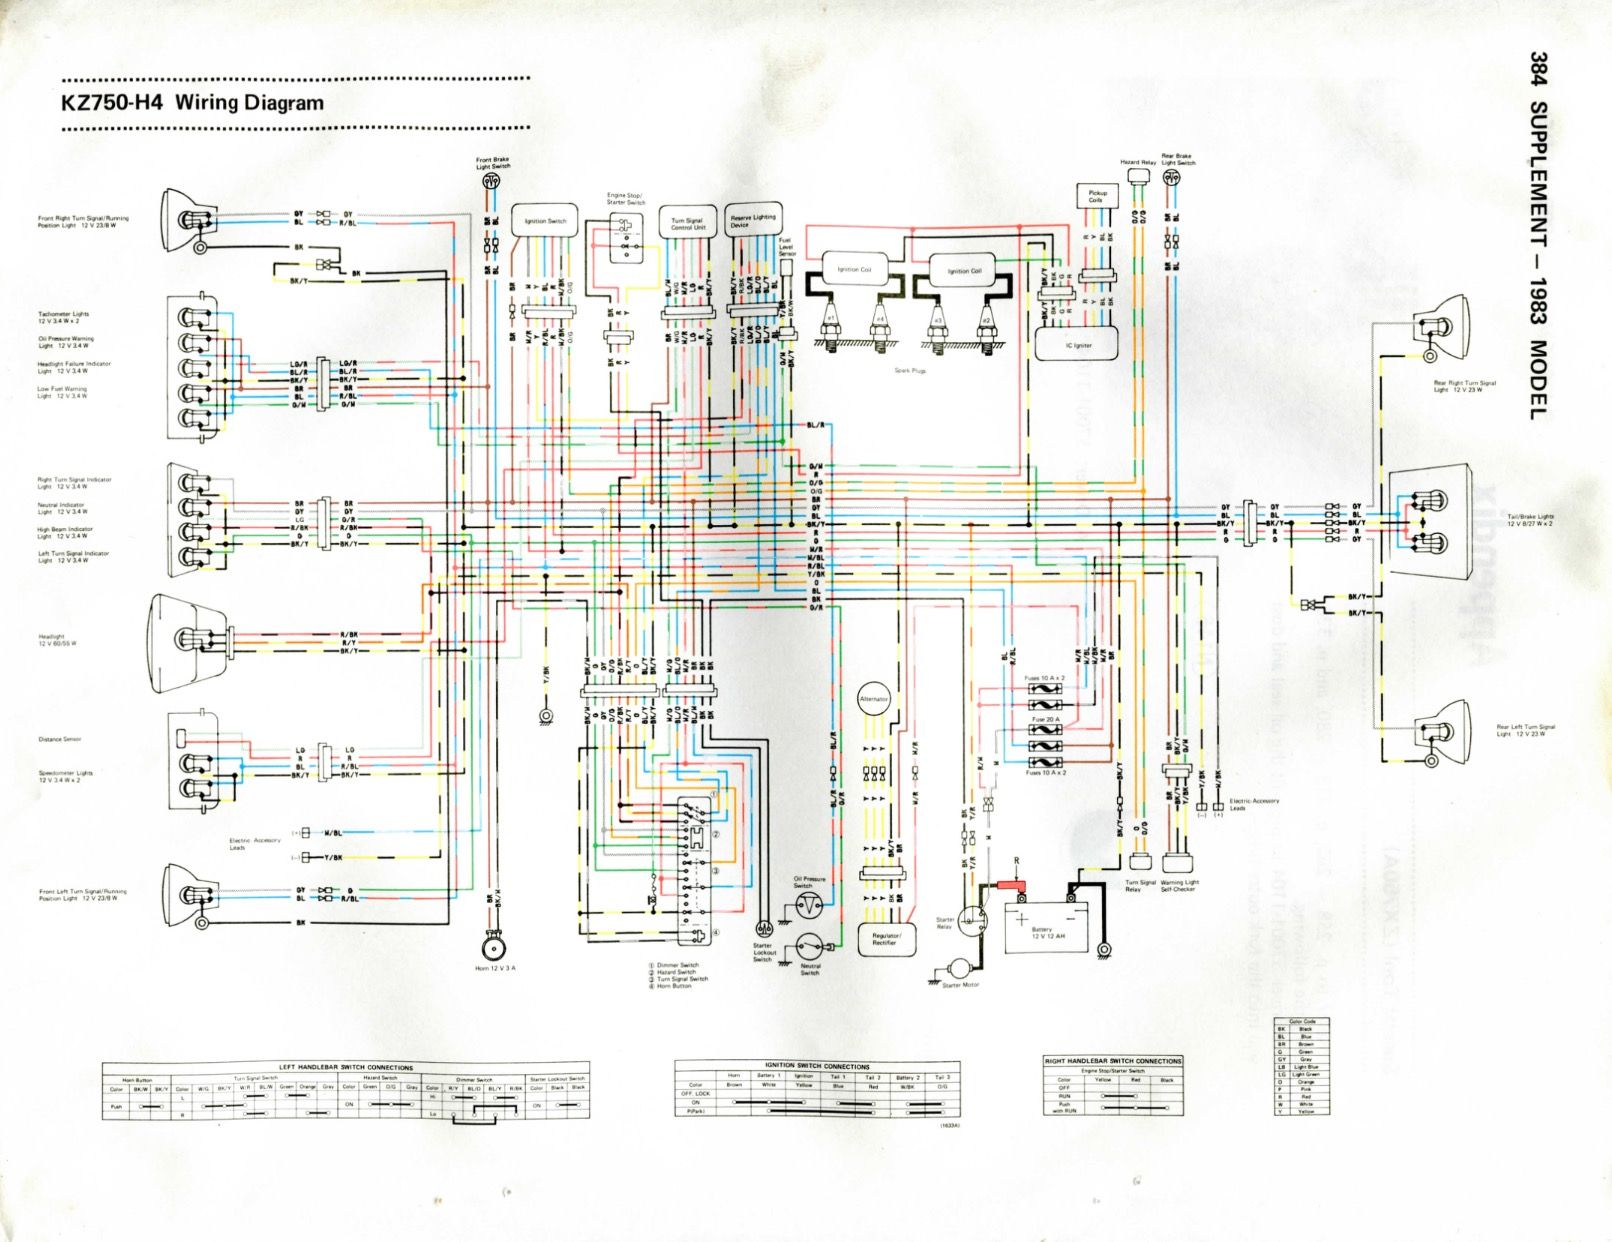 Kawasaki Wiring Schematics | Wiring Diagram on